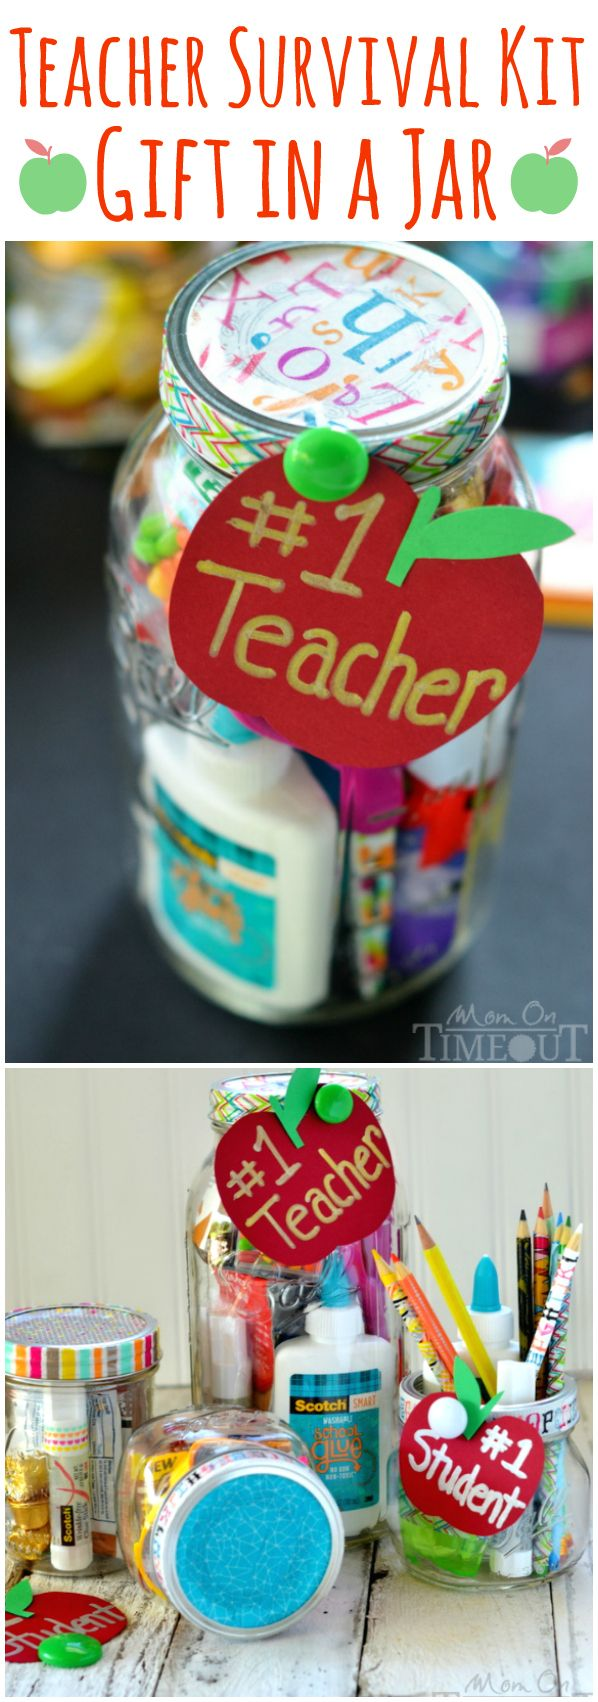 Teacher Survival Kit Gift Idea - perfect for back to school or Teacher Appreciation ...